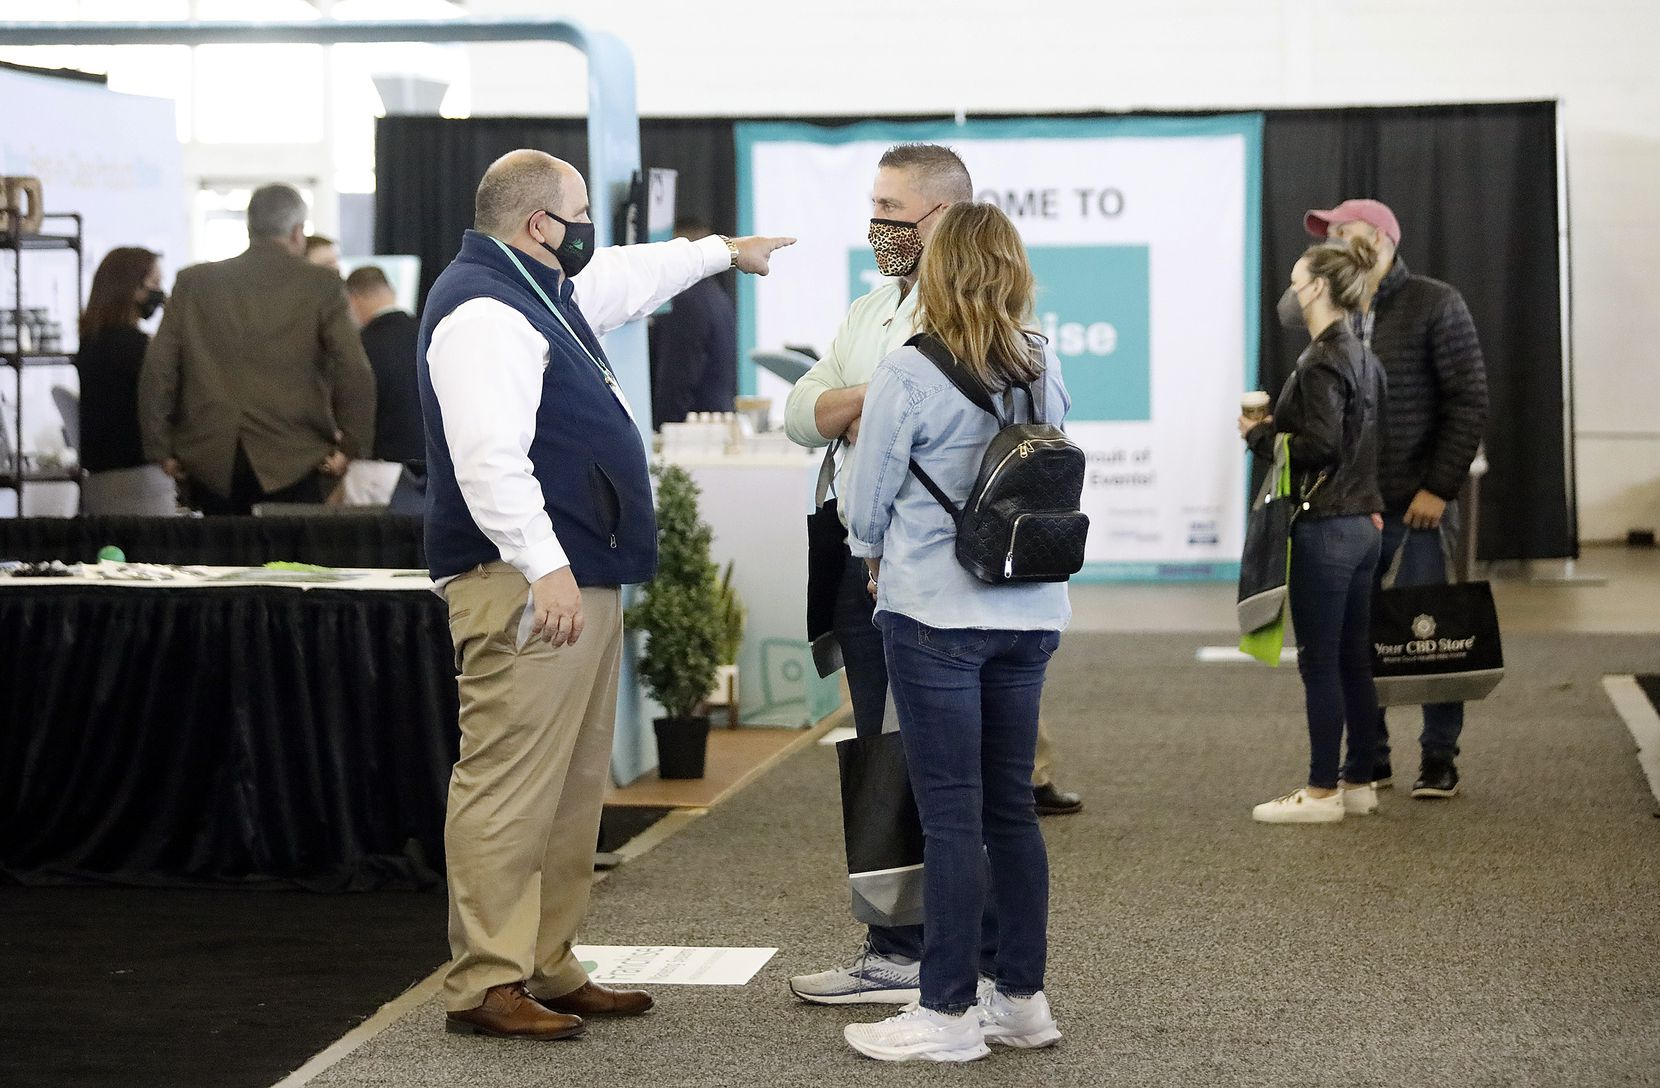 Patrons visit the different booths at The Franchise Show, a conference for local entrepeneurs interested in starting their own franchise business in North Texas at the Dallas Market Hall in Dallas on Saturday, March 20, 2021.  (Stewart F. House/Special Contributor)